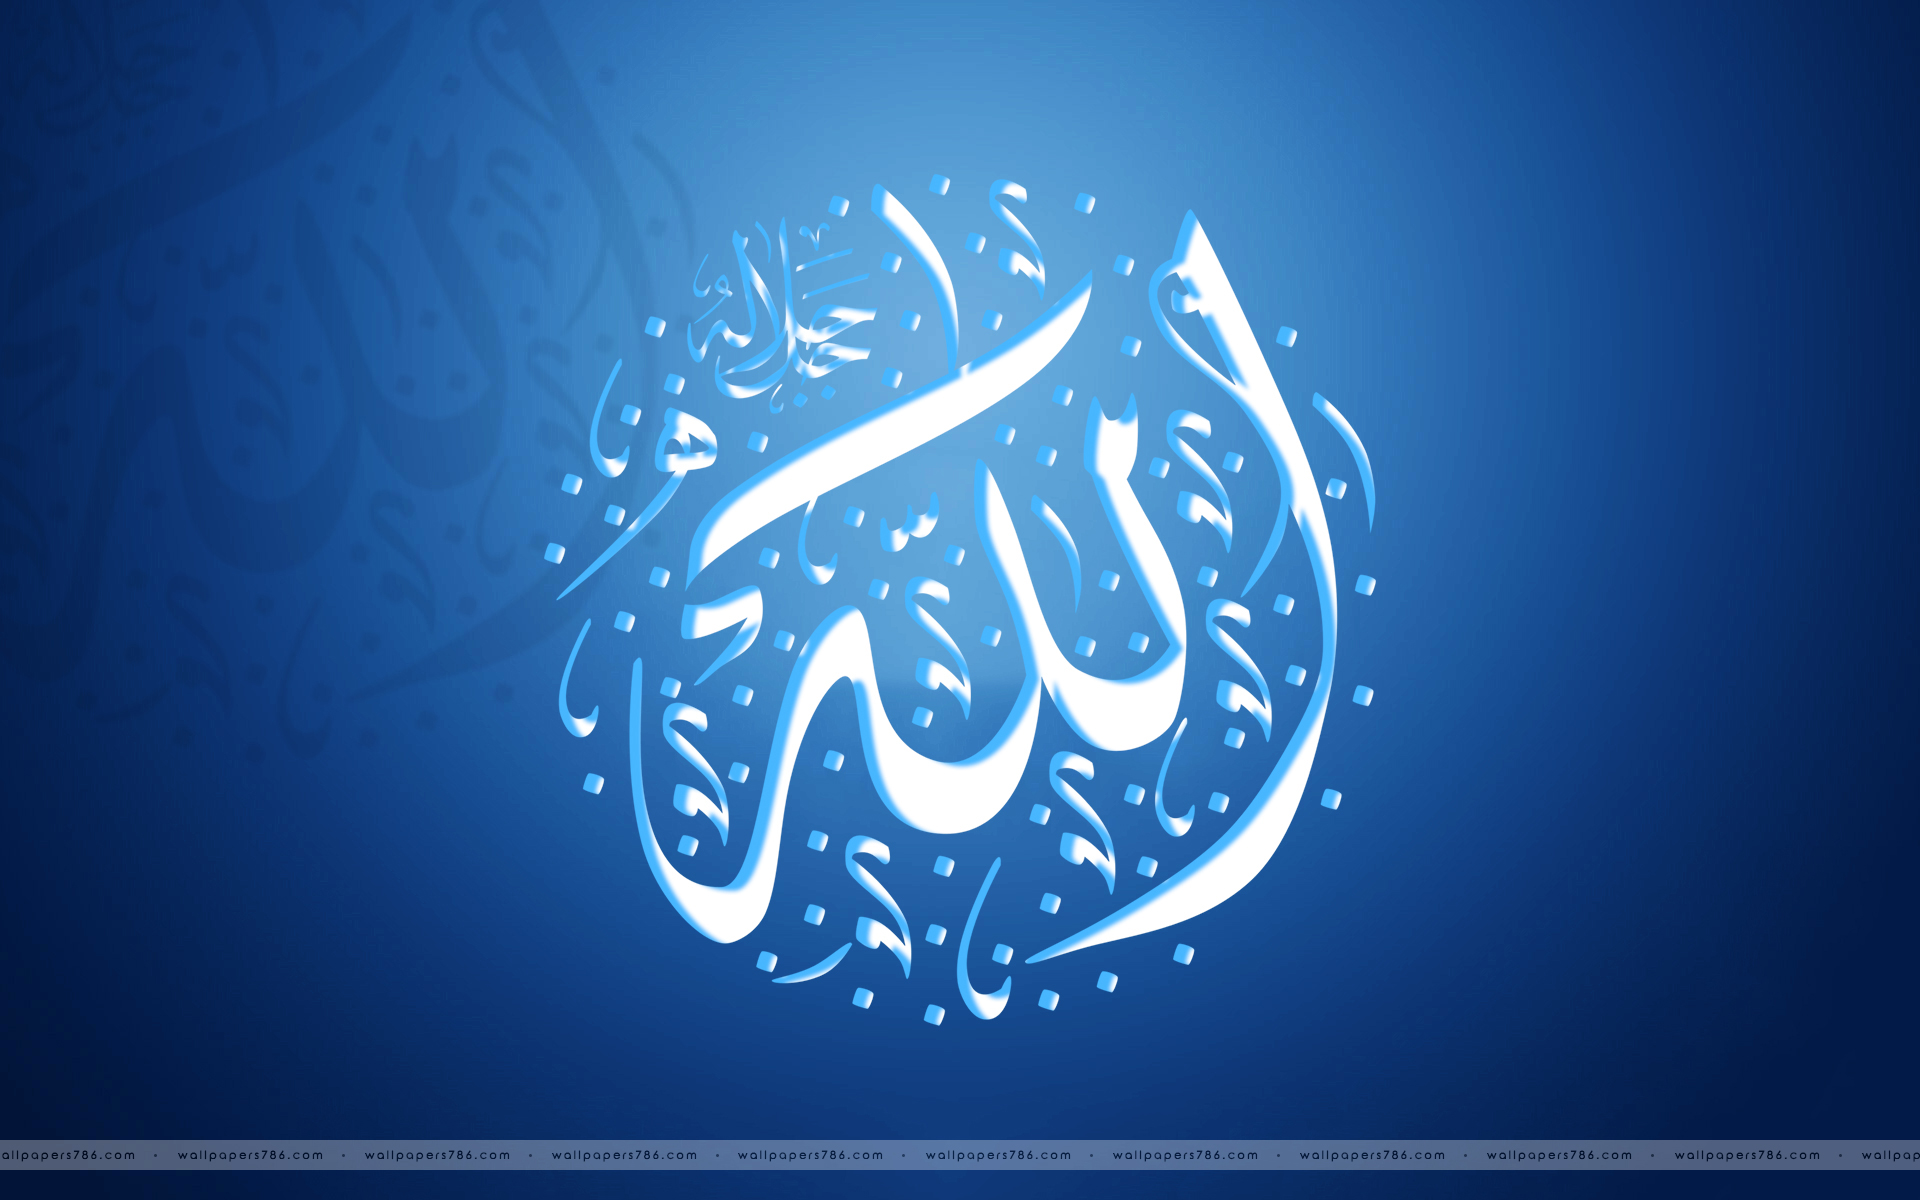 ALLAH Name High Definition Wallpapers Download 1920x1200